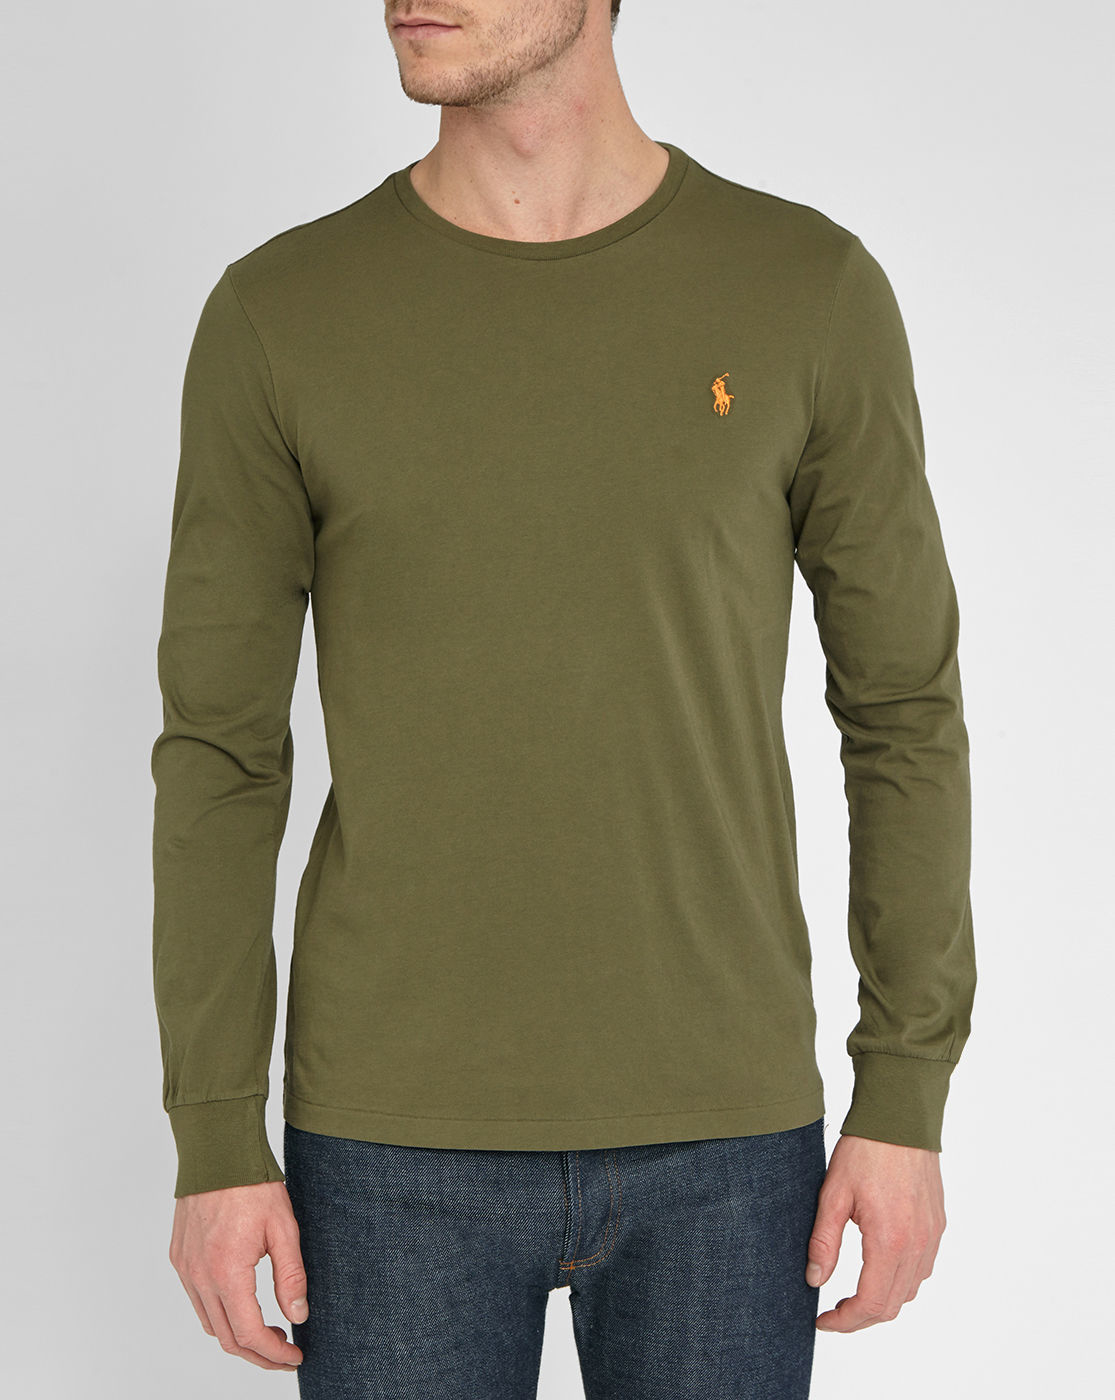 Mens brown long sleeve t shirt is shirt for Personalized long sleeve t shirts